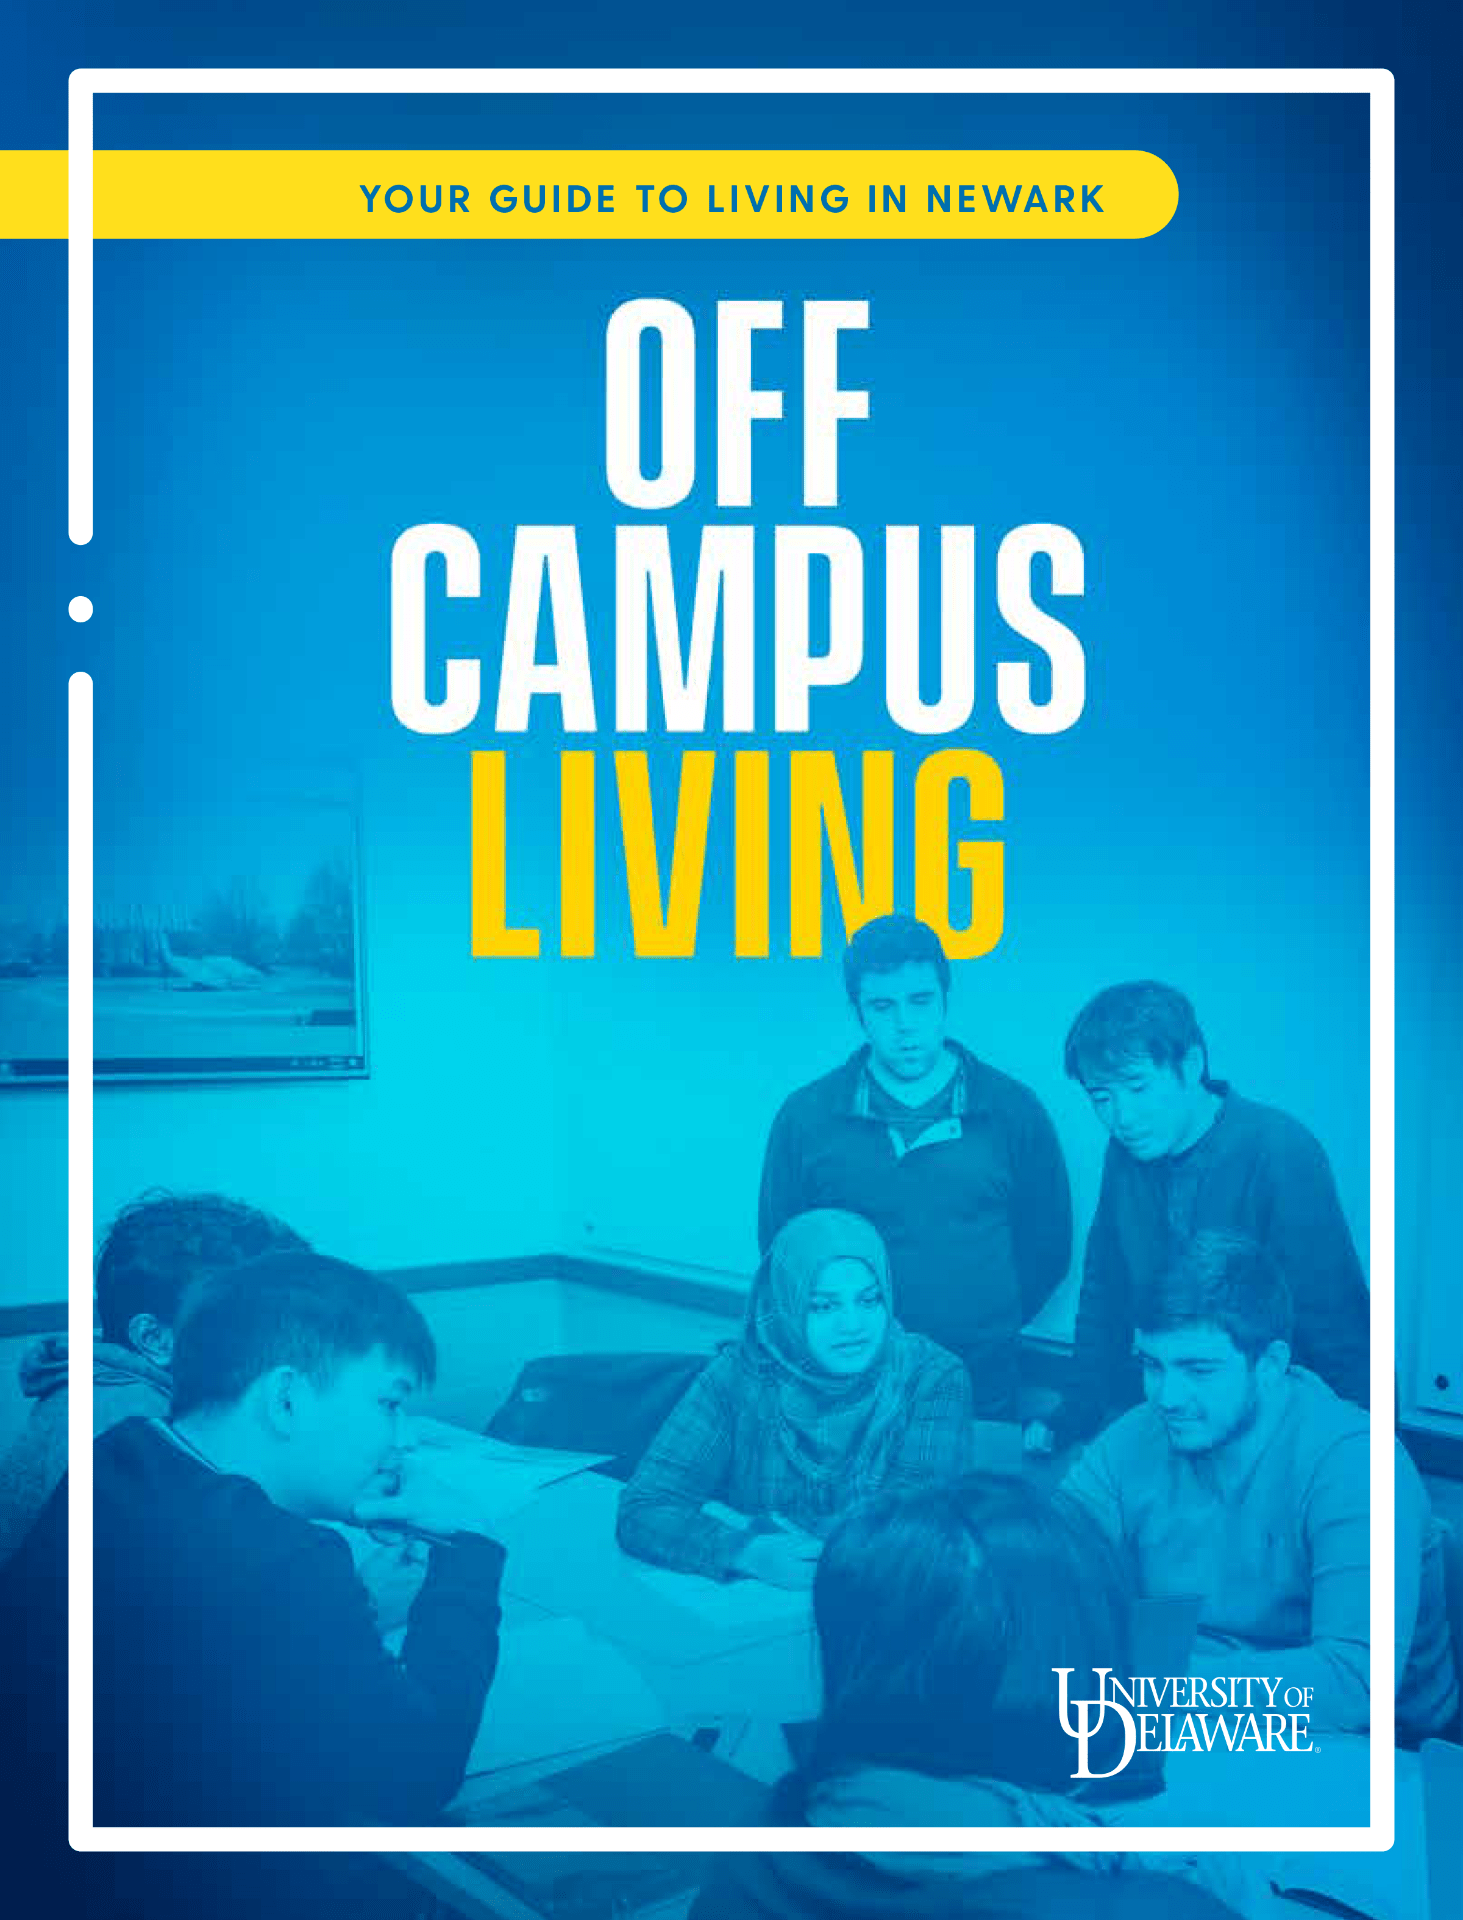 Cover of UD 2019 Off Campus Living Guide